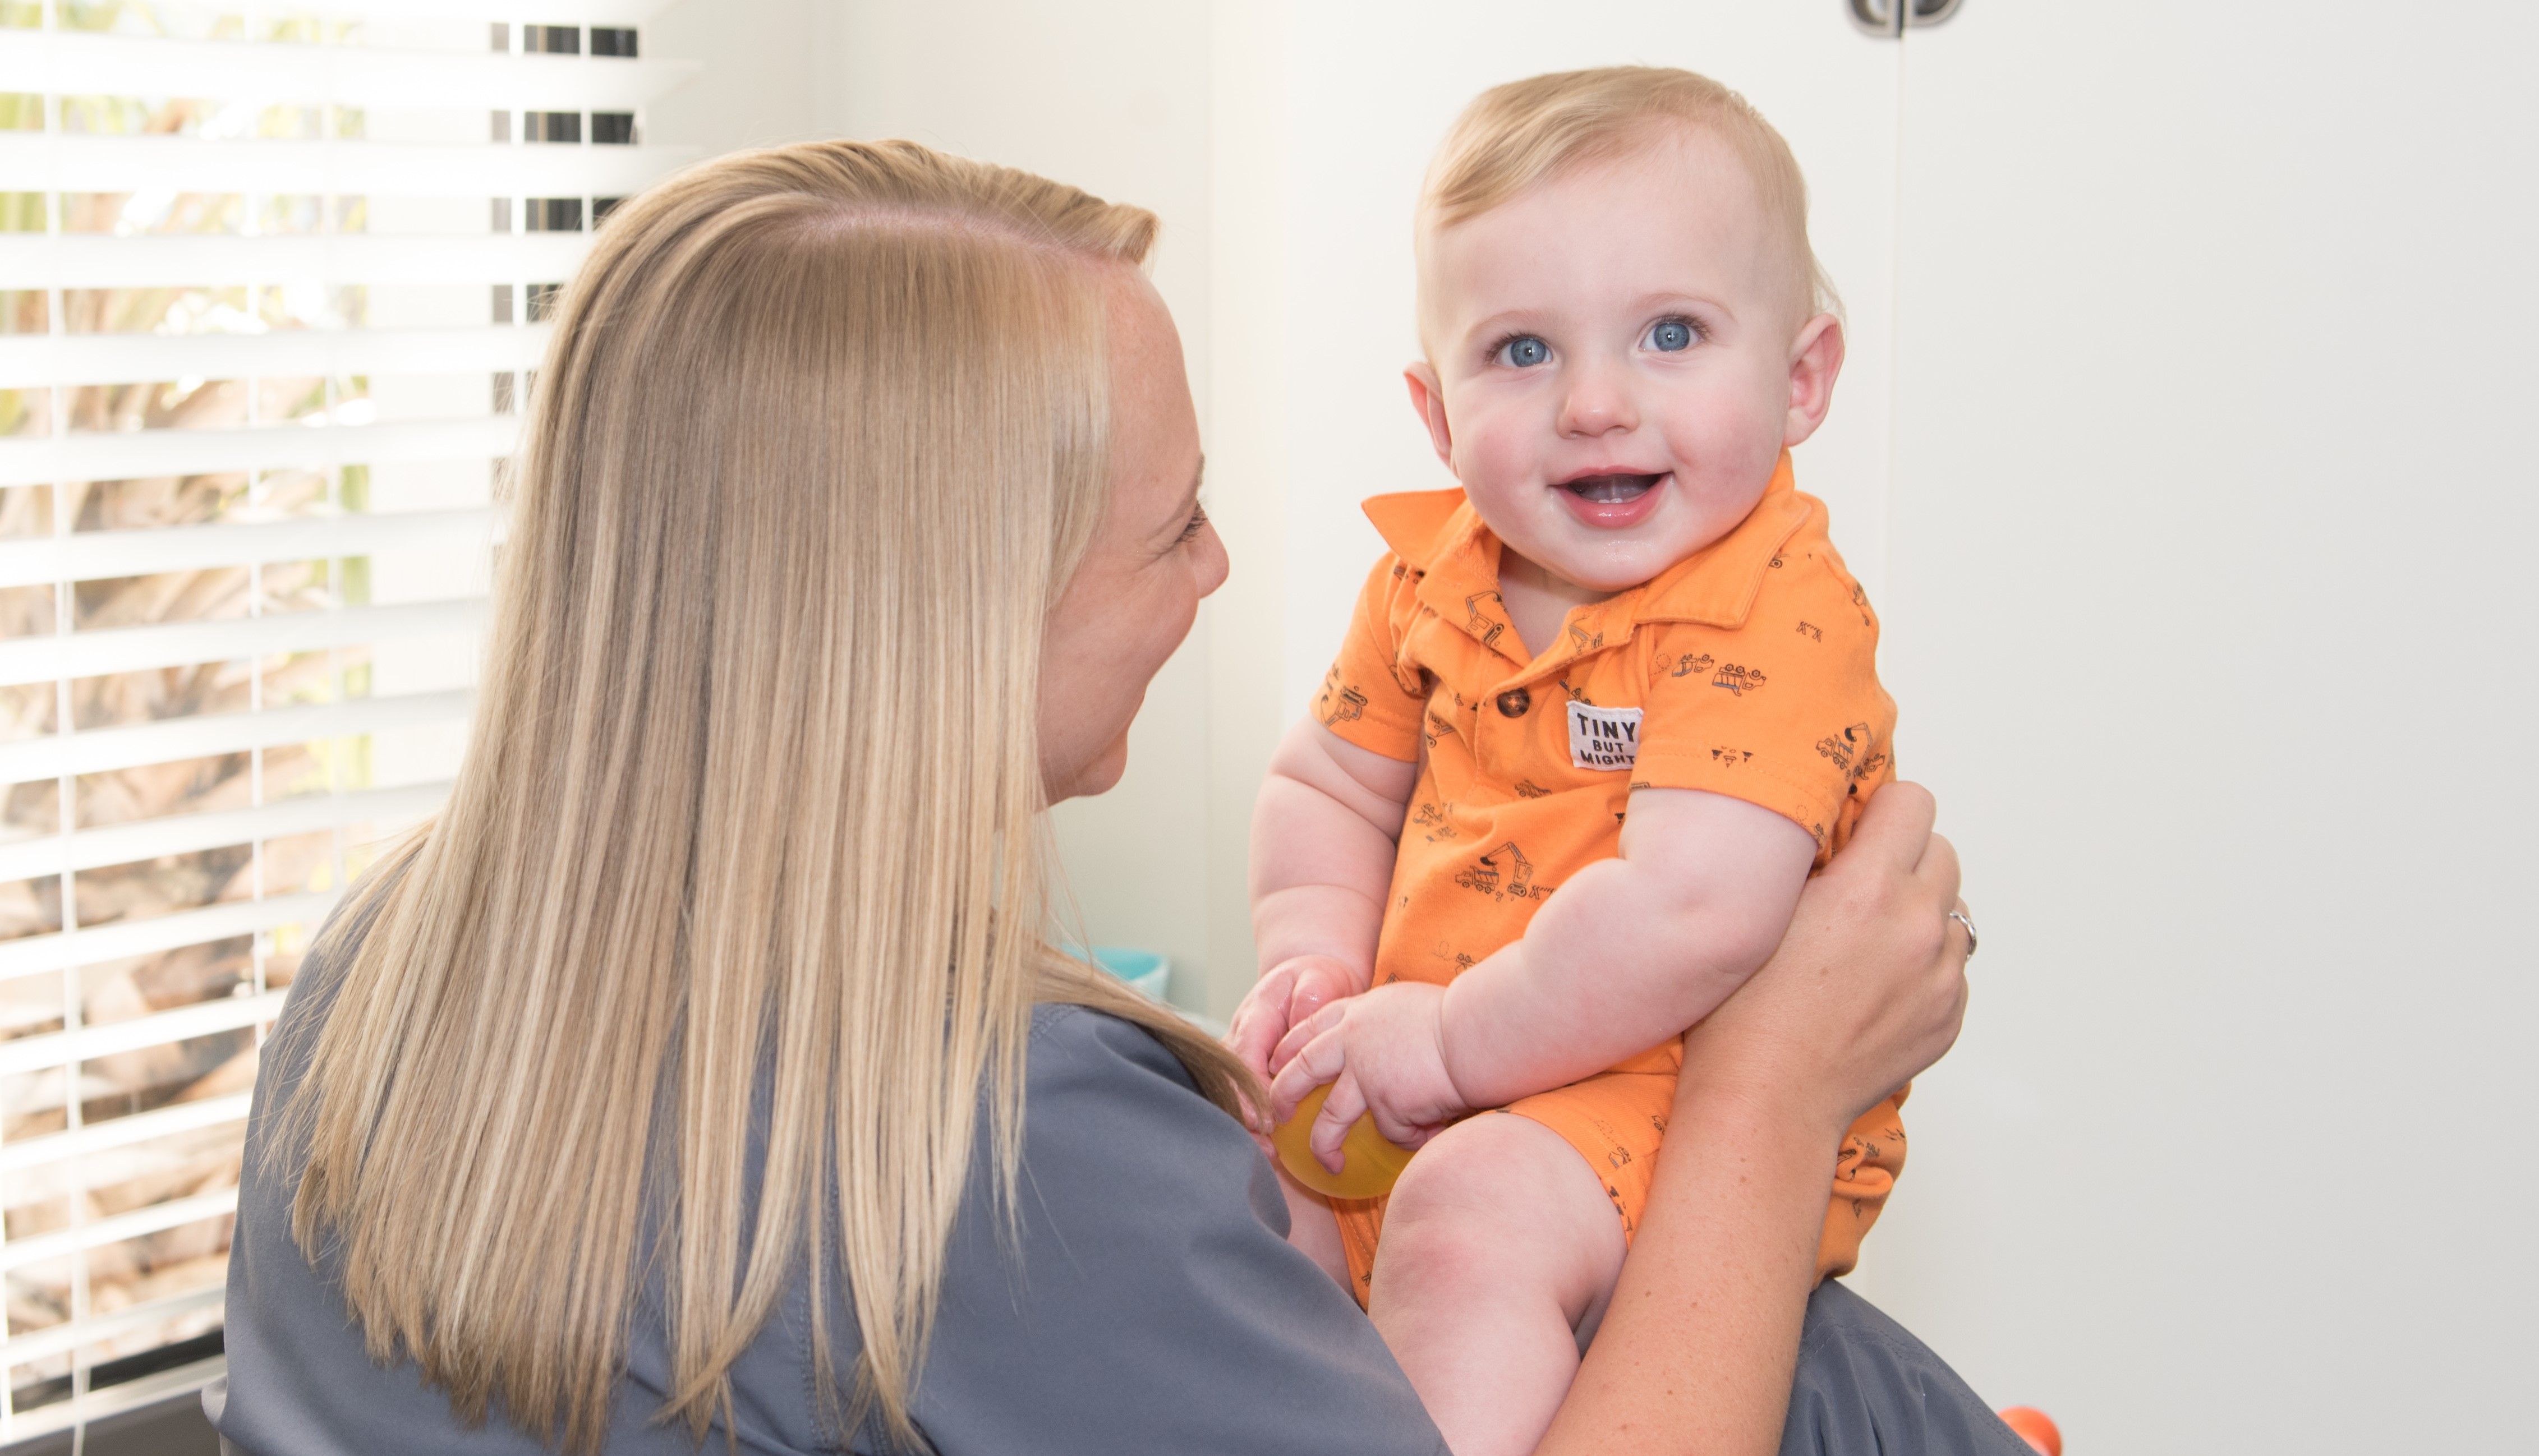 Tri County Therapy, Speech Therapy, Occupational Therapy, Physical Therapy, Greenville, Charleston, Pediatric Therapy